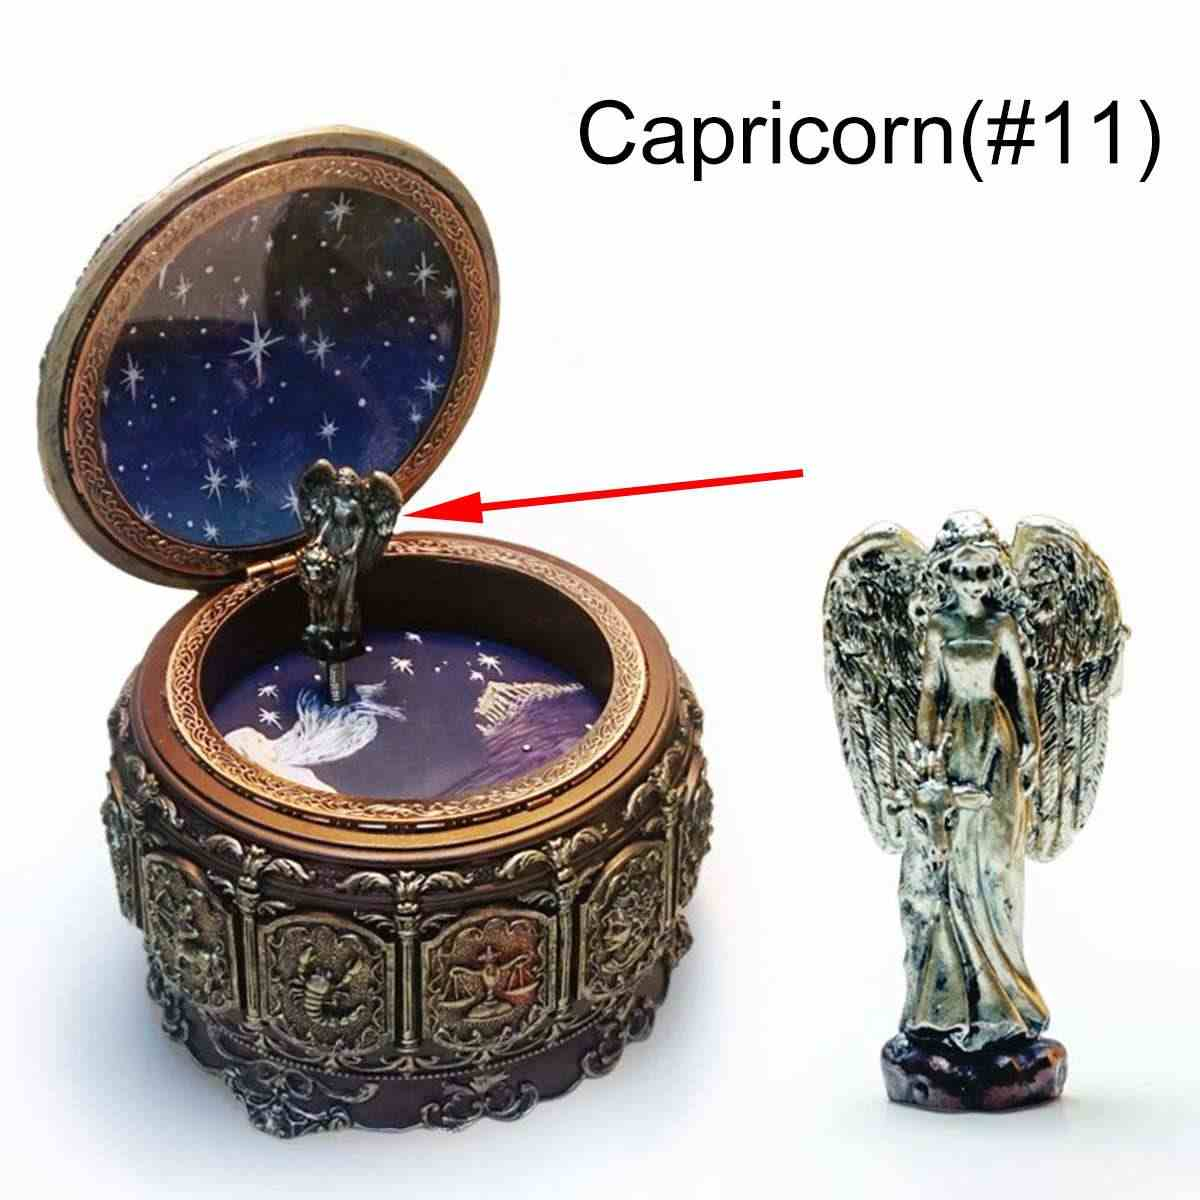 12 Constellations Vintage Zodiac Luminous Music Box with LED Lights Easter Birthday Valentine's Gift Wedding Home Decoration